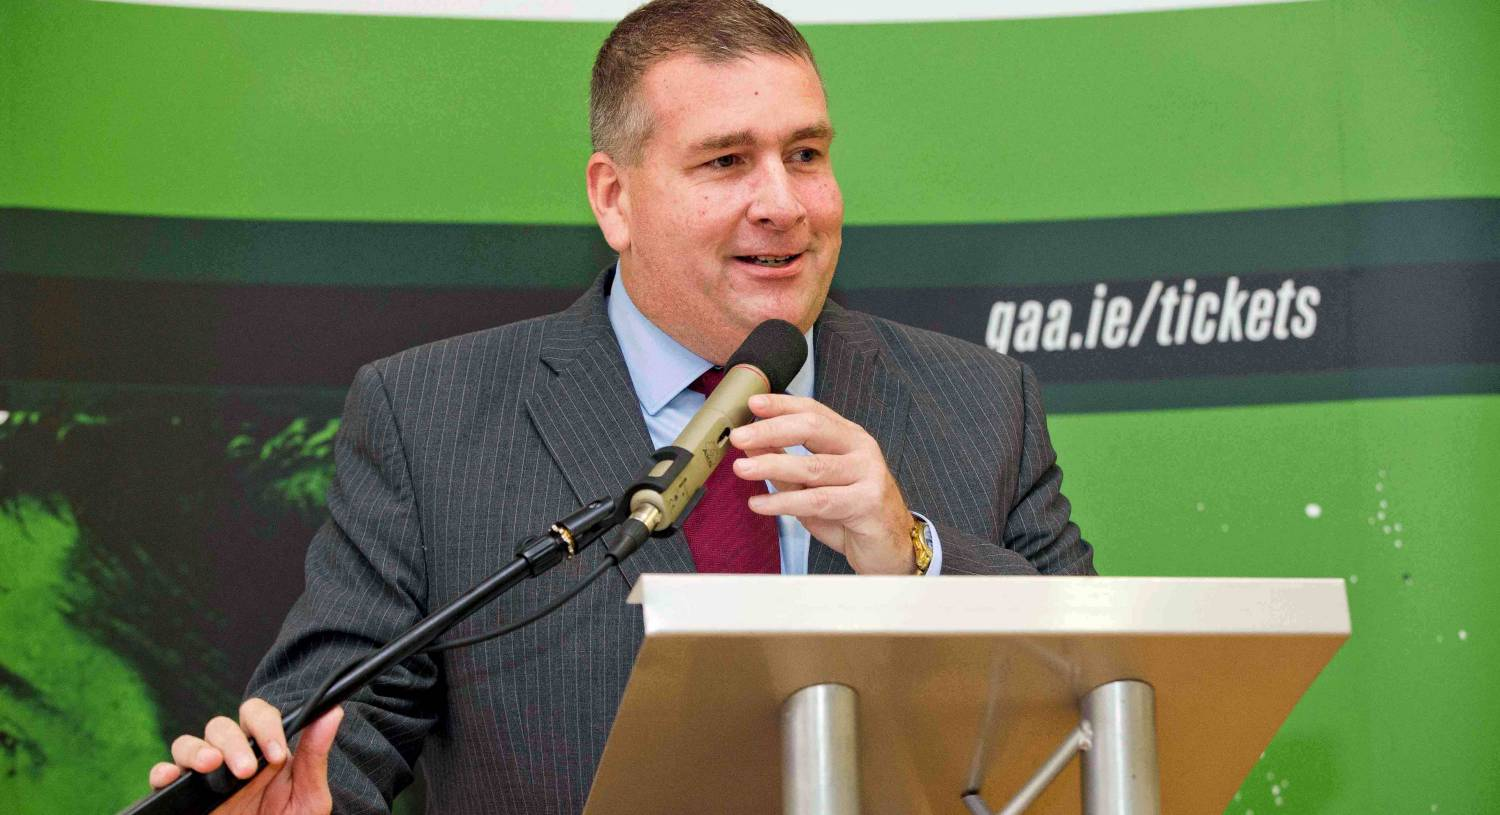 New York chair slams 'out of touch' O'Sullivan comments